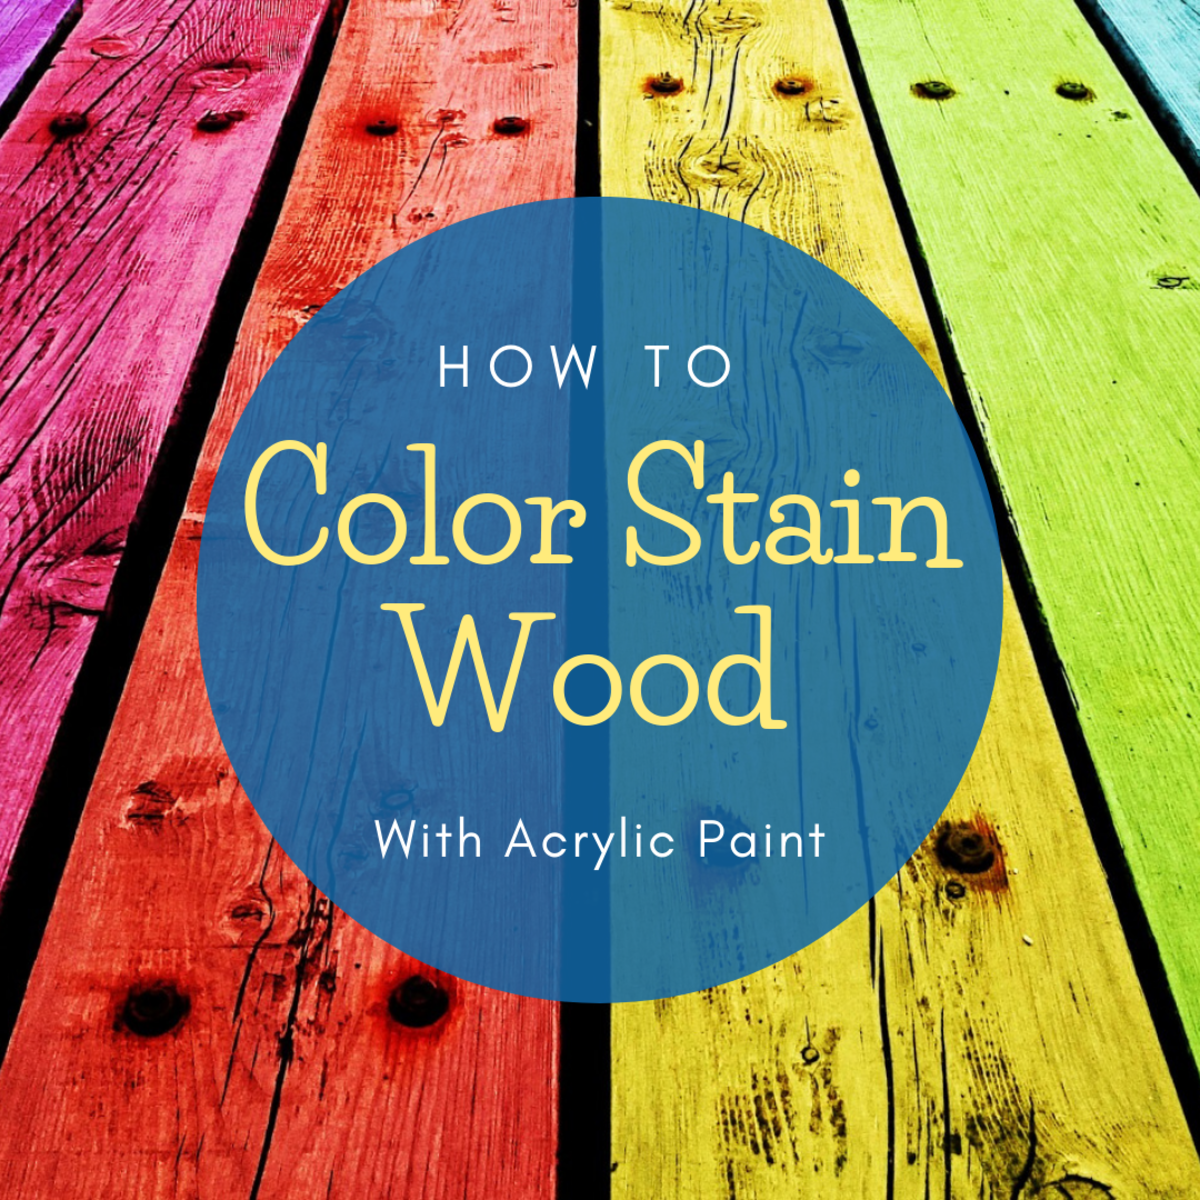 How to Color Stain Wood for Crafts